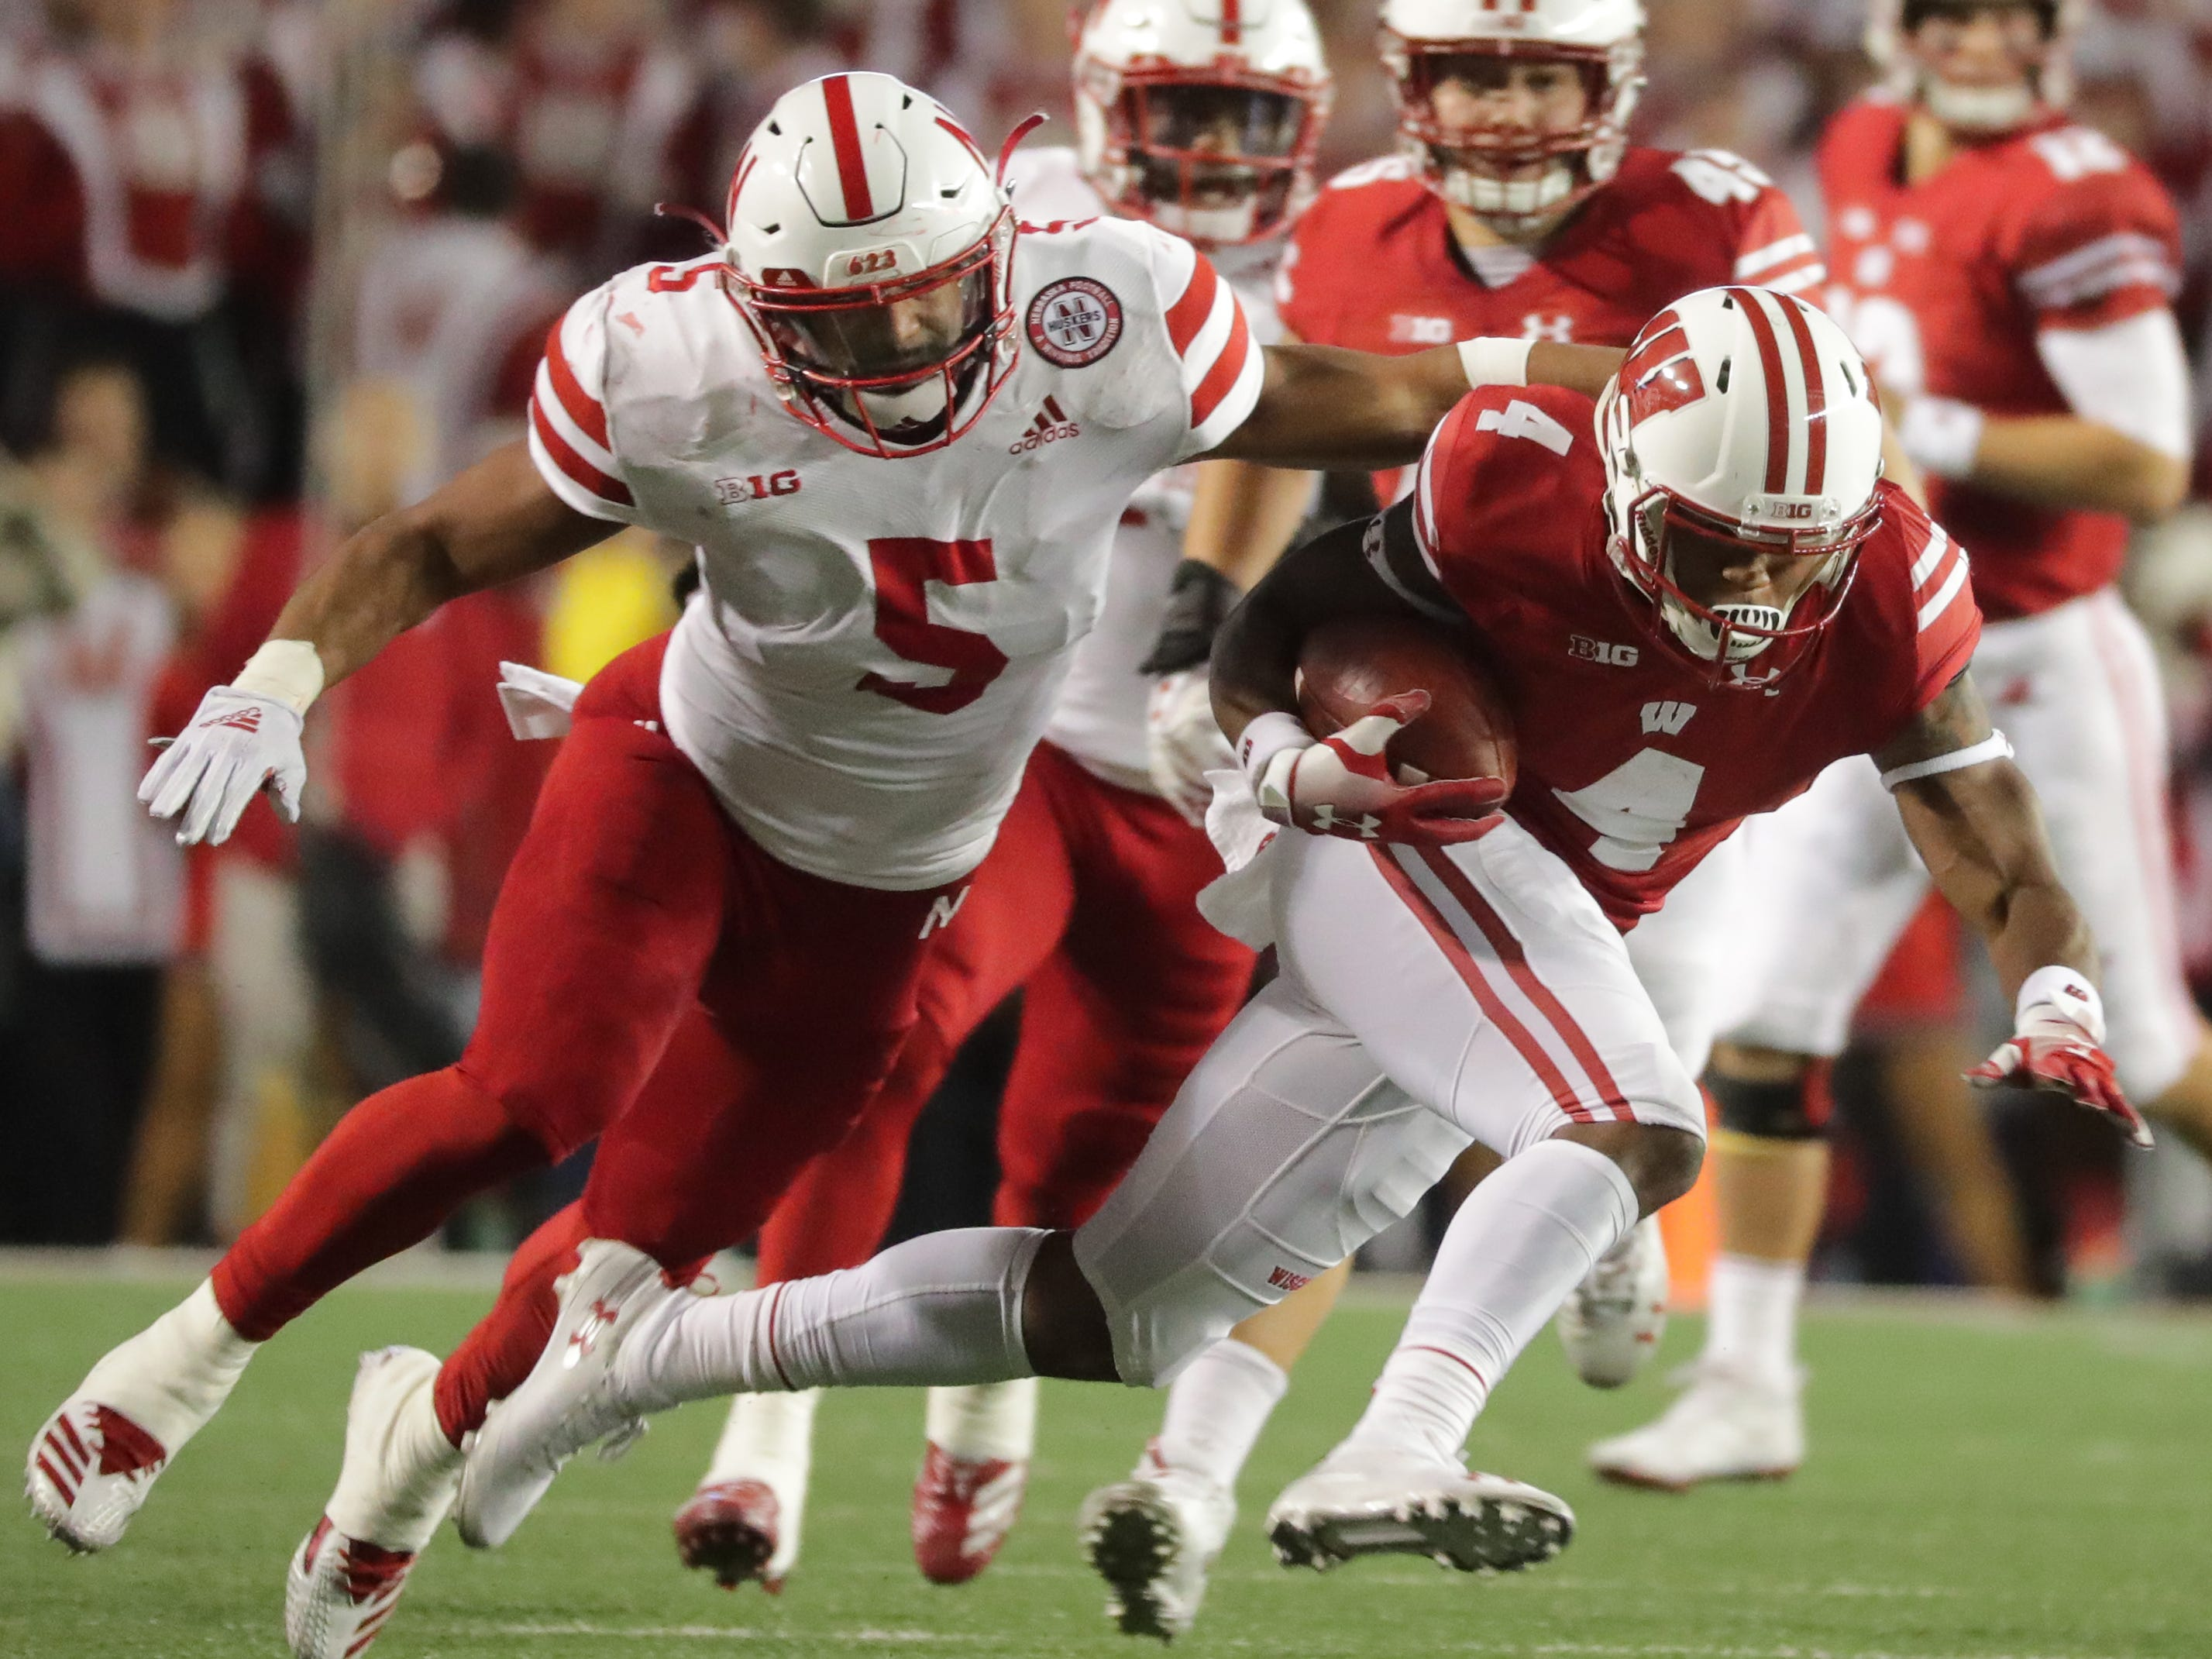 Wisconsin wide receiver A.J. Taylor picks up a first down on a 14-yard reception during the second quarter against Nebraska on Saturday night.